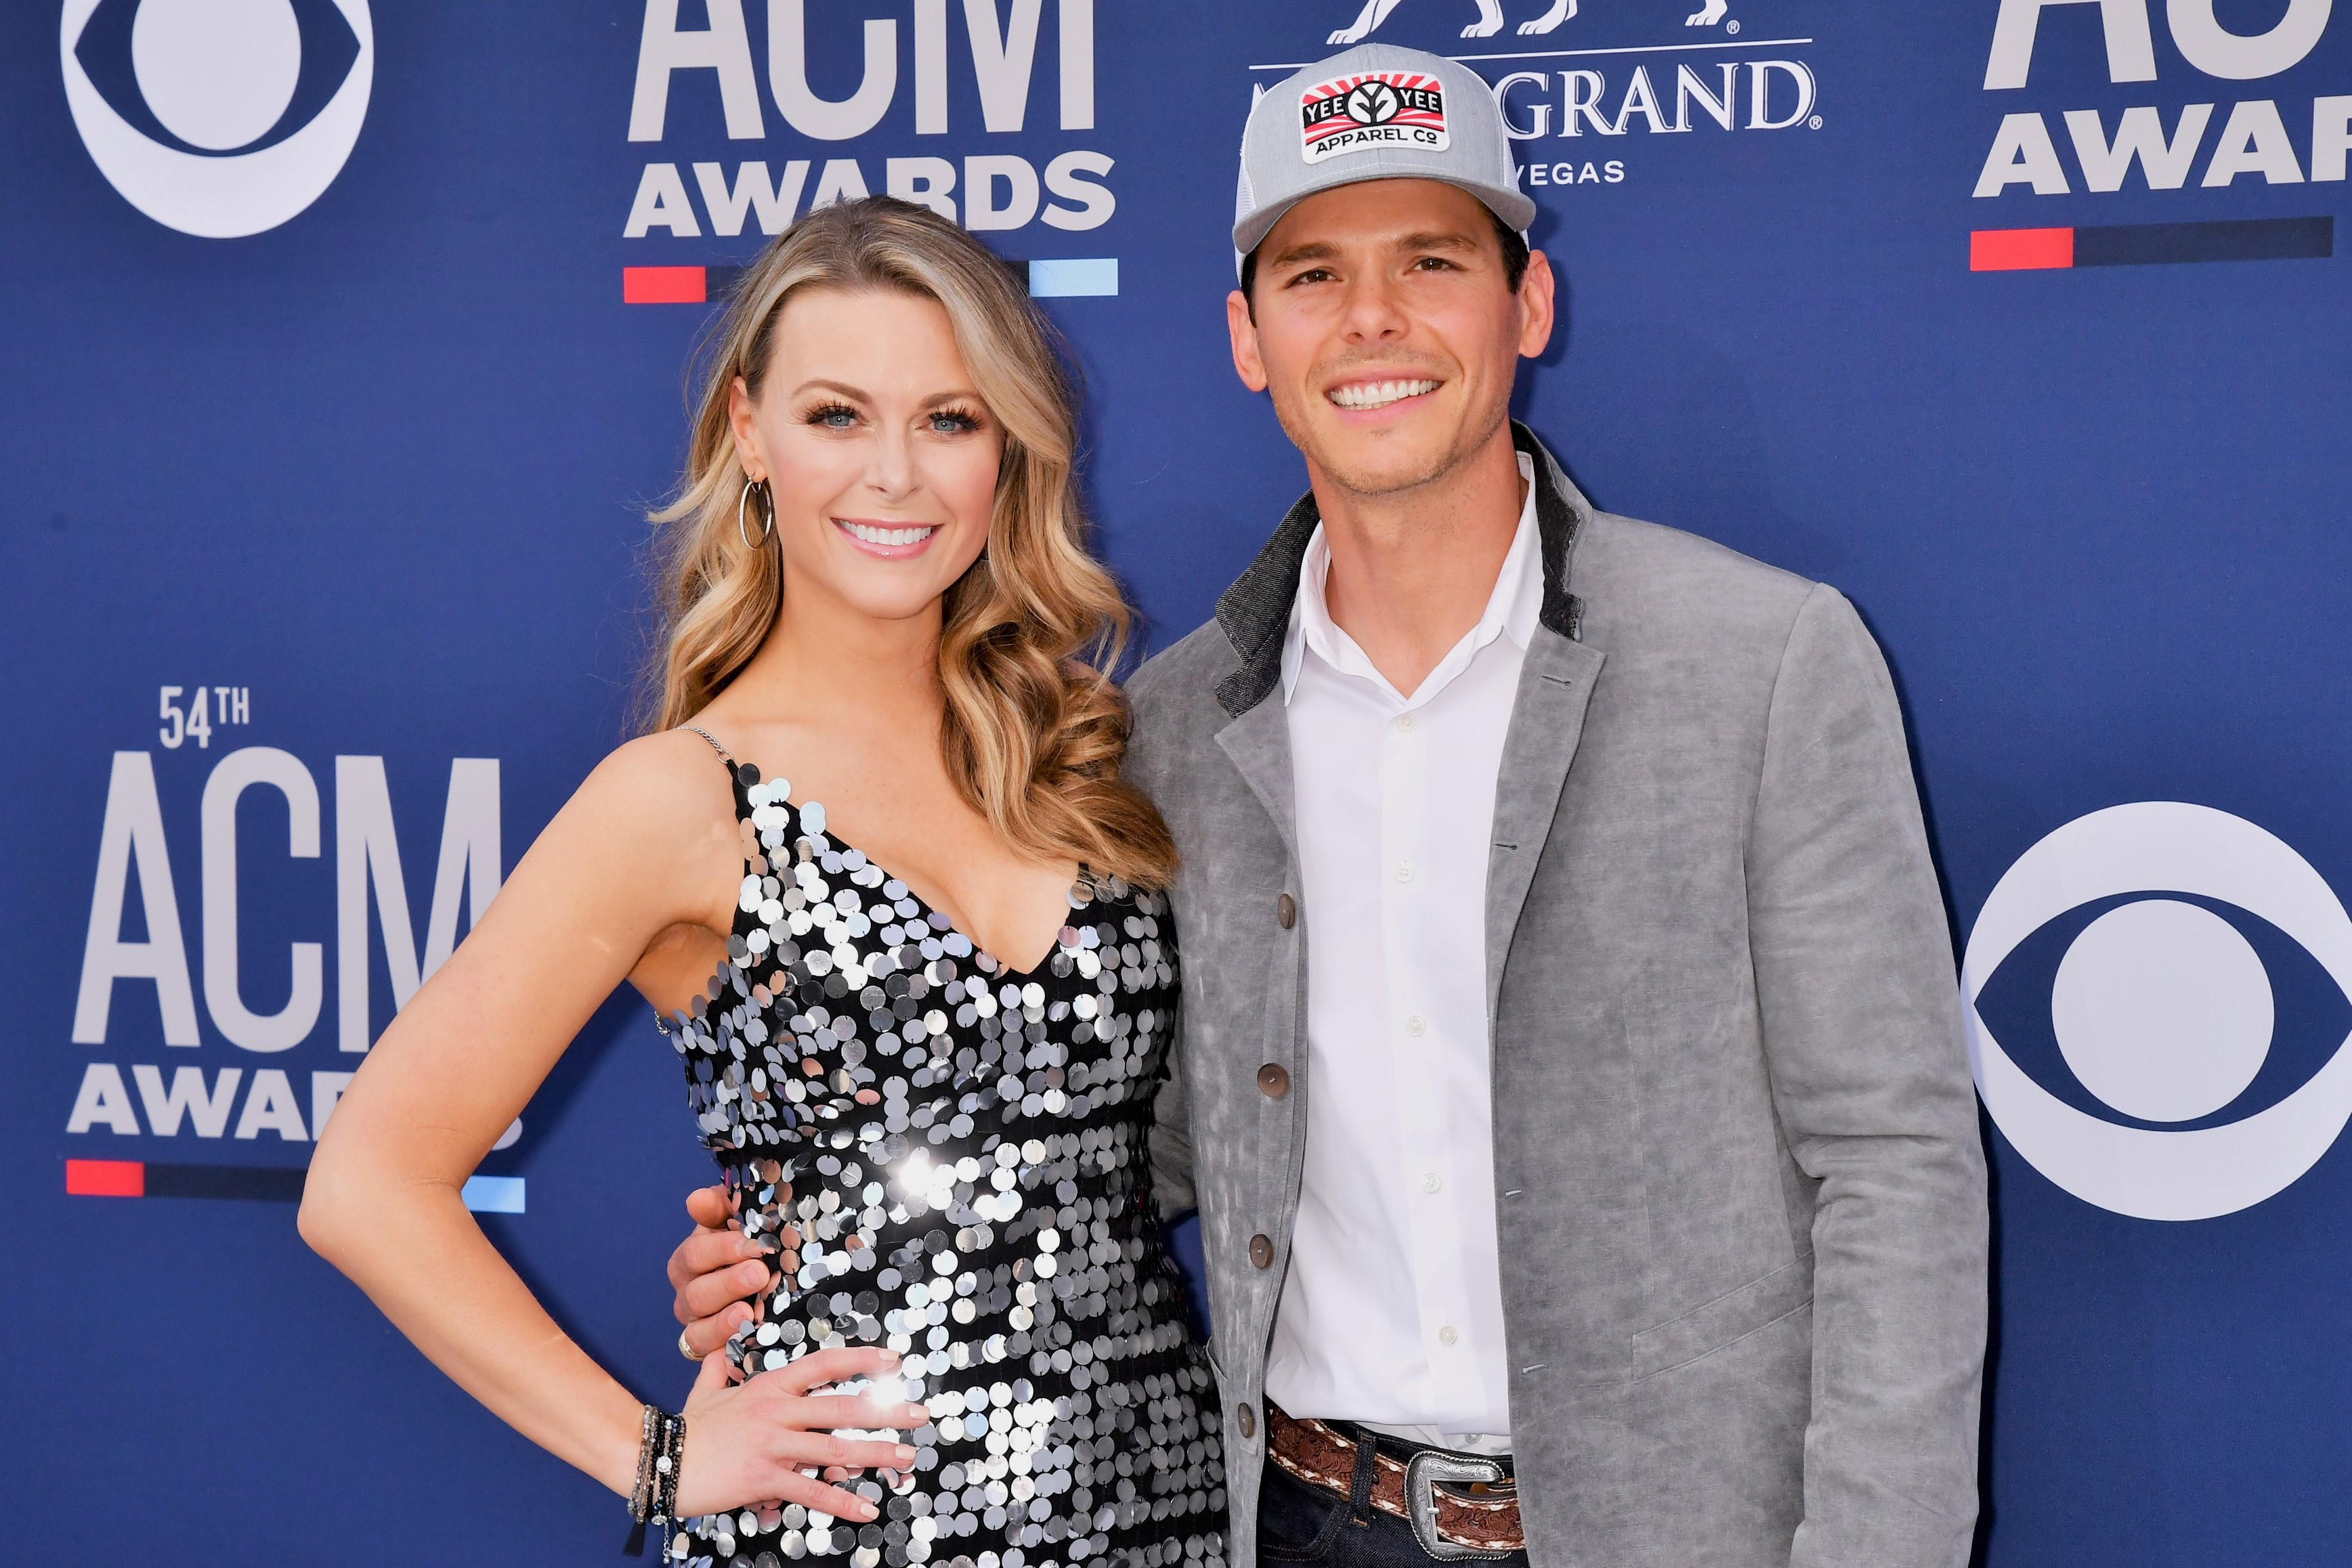 Granger Smith Reveals Final Special Moment He Shared with Son River That Suddenly Turned to Tragedy